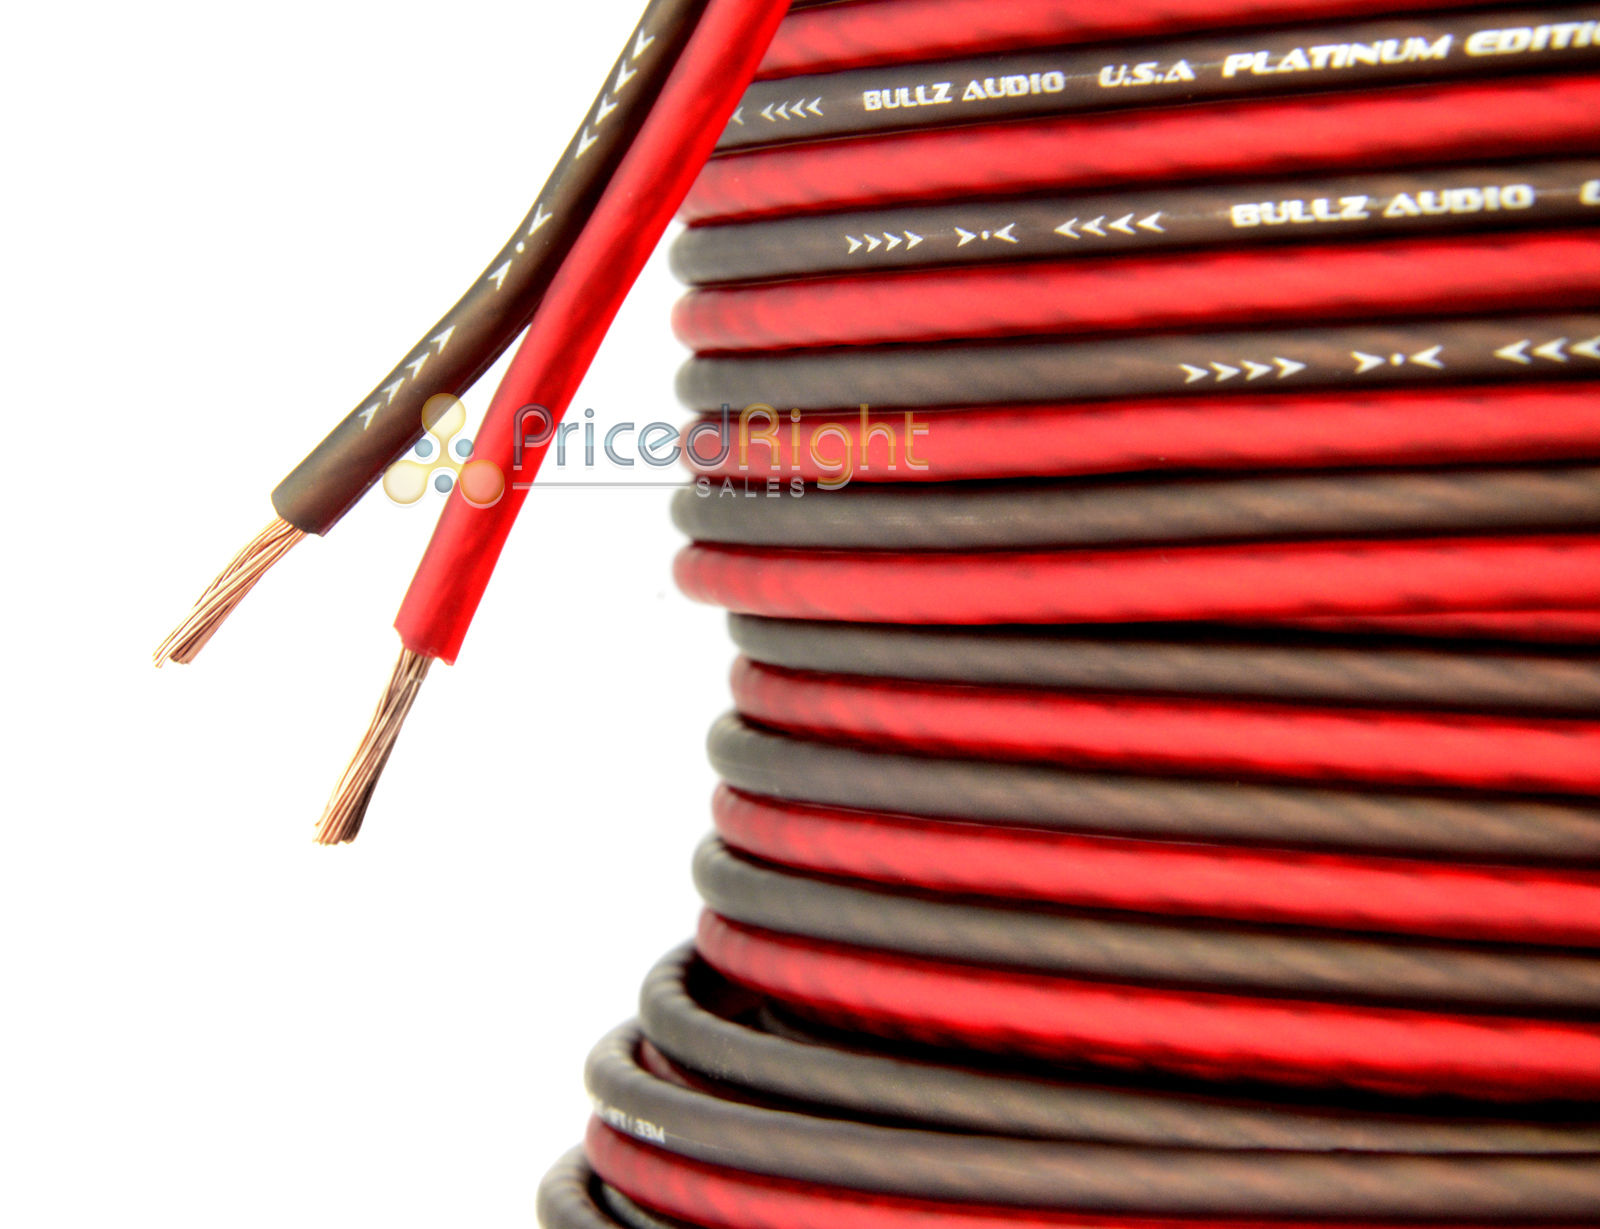 5 Ft 14 Gauge Professional Gauge Speaker Wire / Cable Car Home Audio AWG